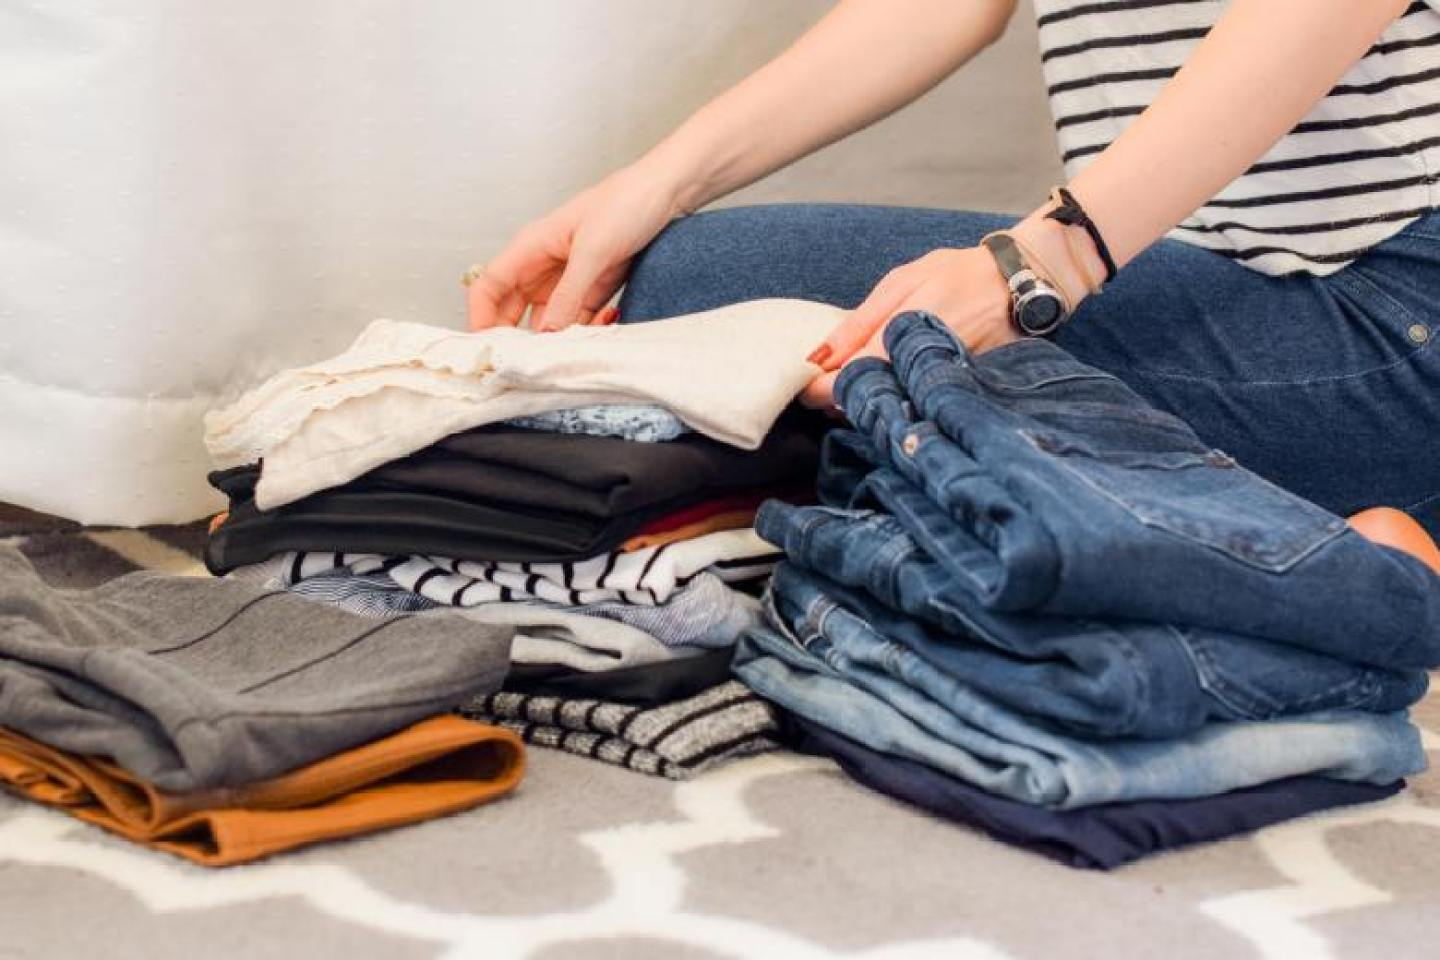 how to build a sustainable, ethical capsule wardrobe: over 50 brands